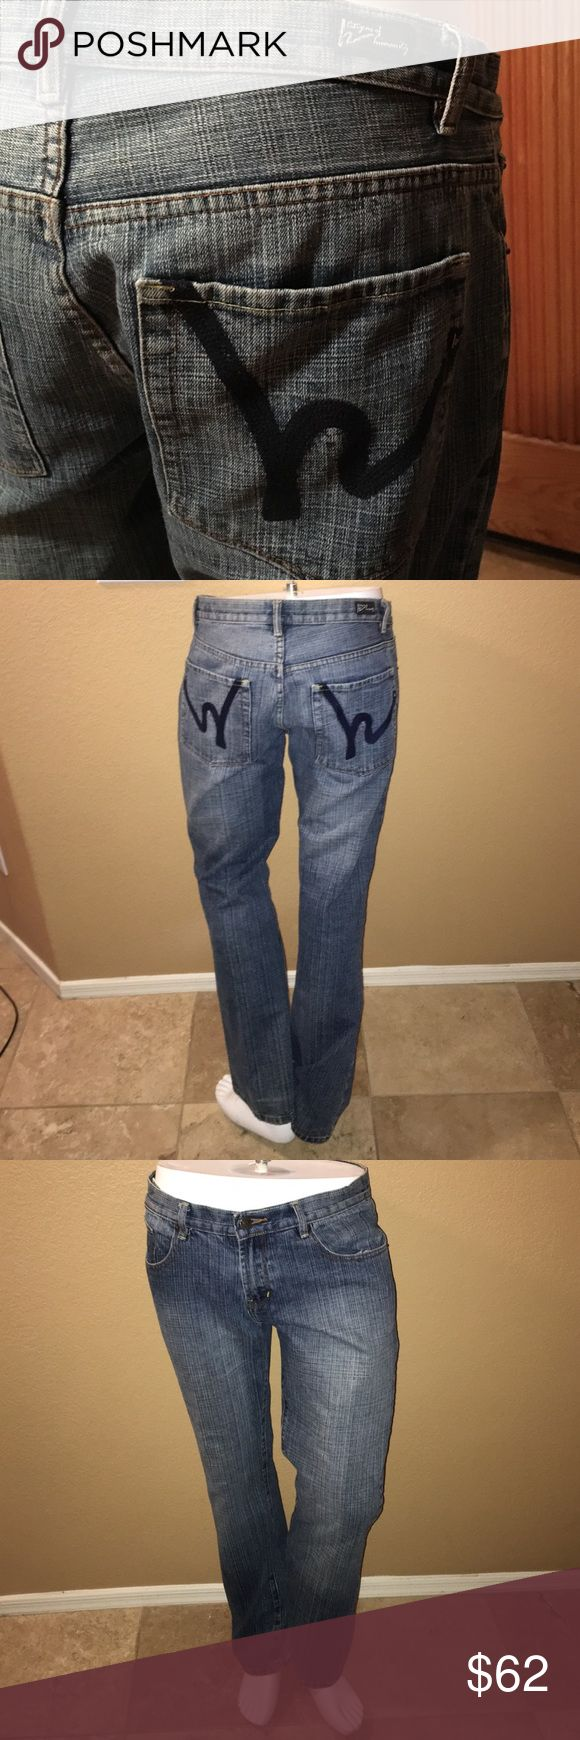 Men's Citizens of Humanity Jeans! 78. Authentic Men's Citizens of Humanity Low Waste Flare Stretch Dark Wash Jeans! Size W:35, L:32, 100% Cotton. In excellent condition only worn a couple times! Citizens of Humanity Jeans Bootcut